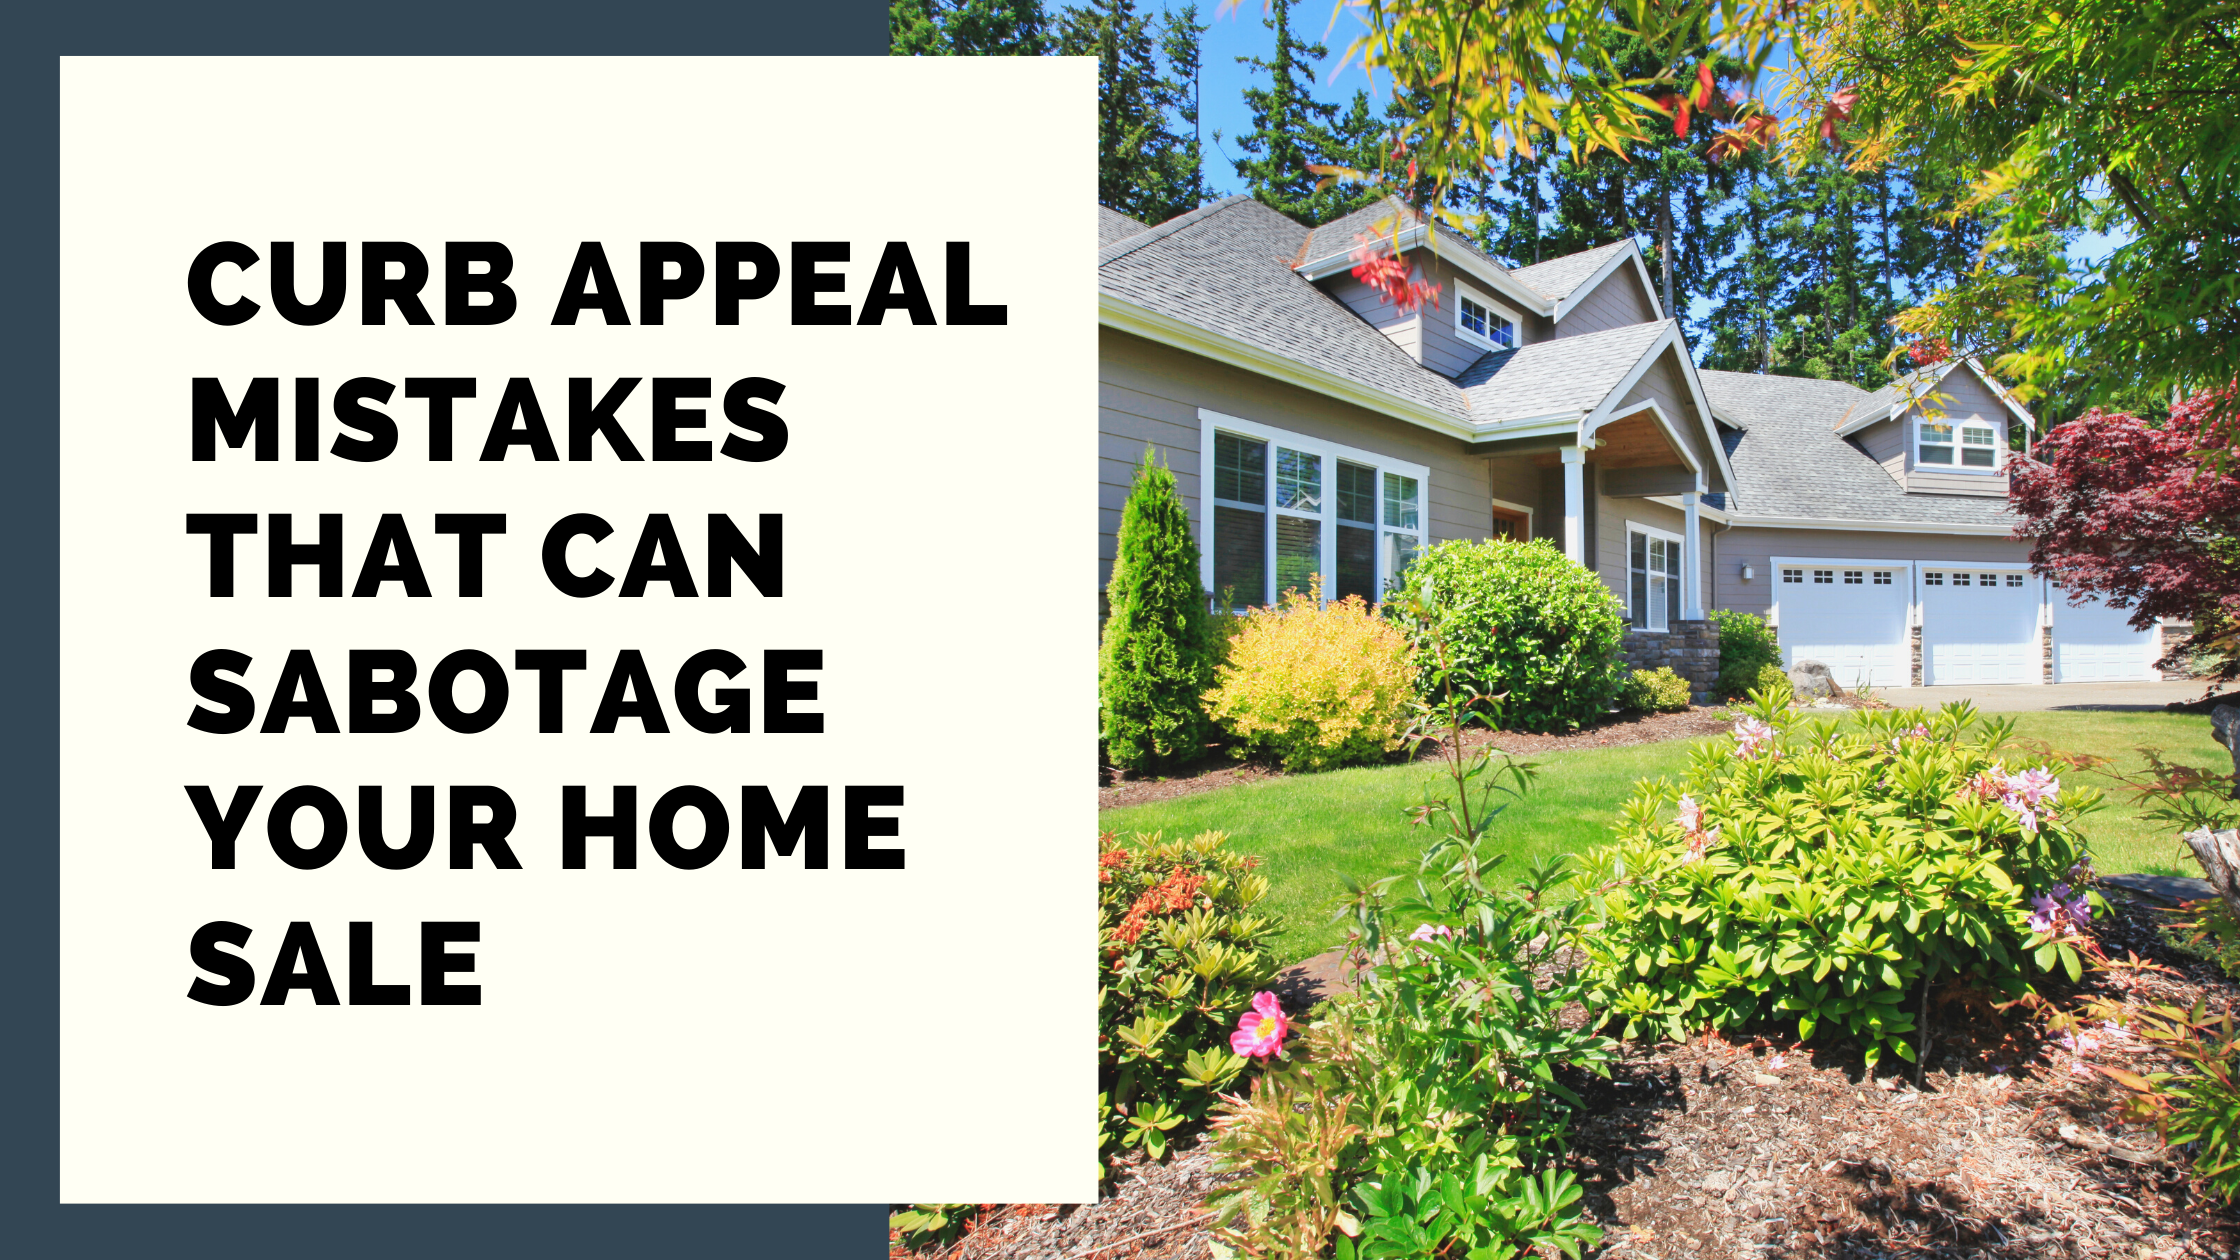 Curb Appeal Mistakes That Can Sabotage Your Home Sale